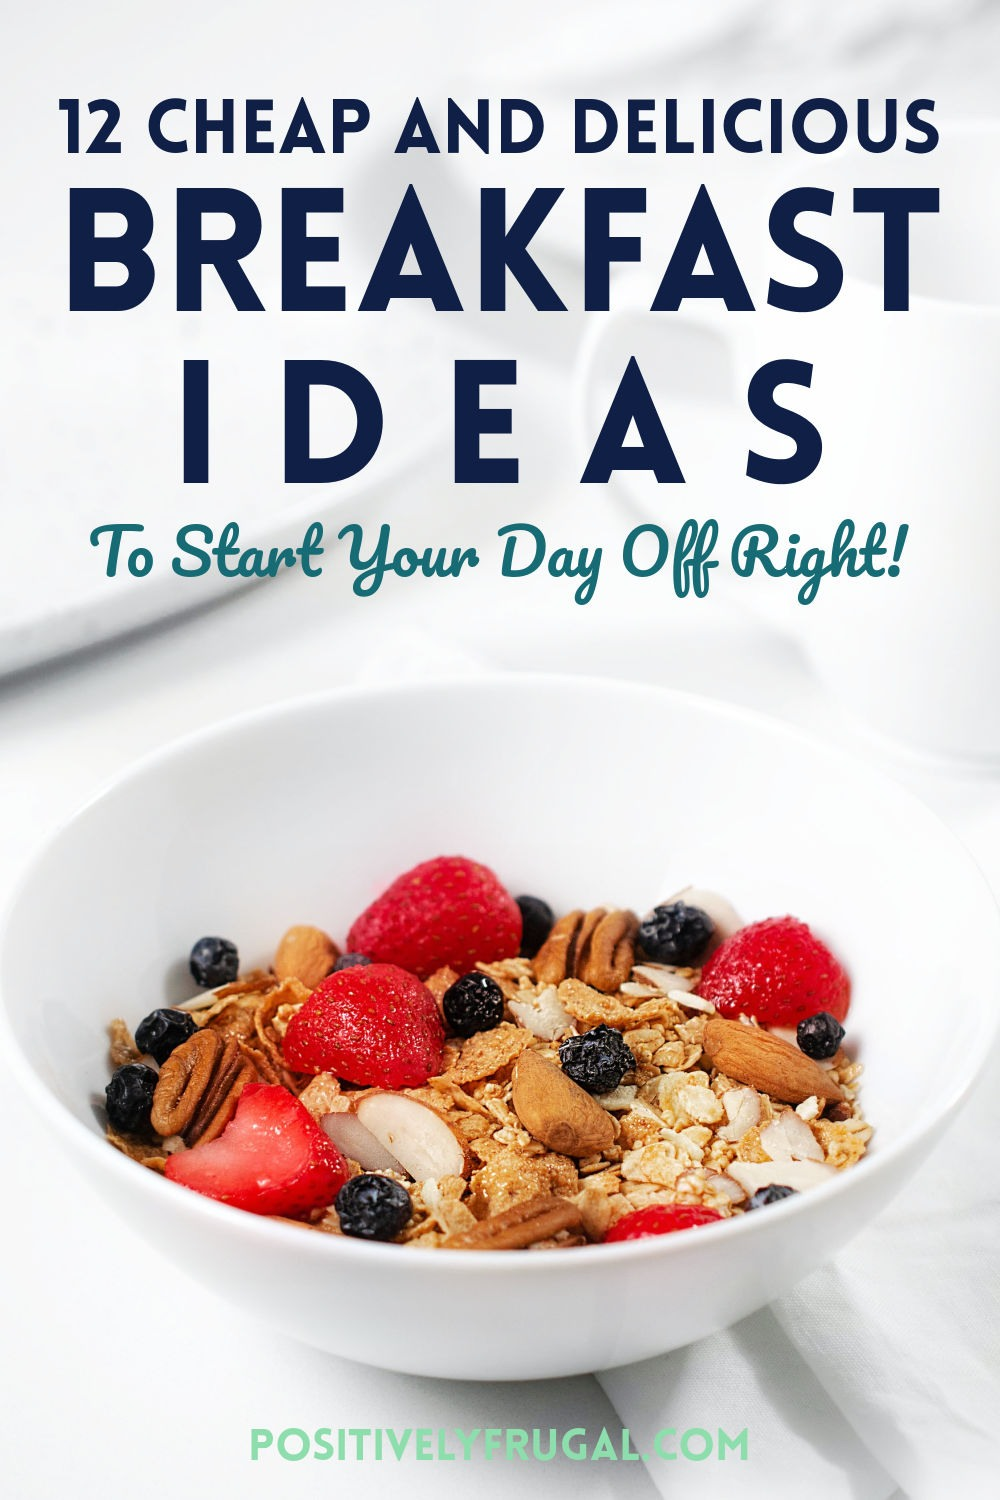 Delicious and Cheap Breakfast Ideas by PositivelyFrugal.com